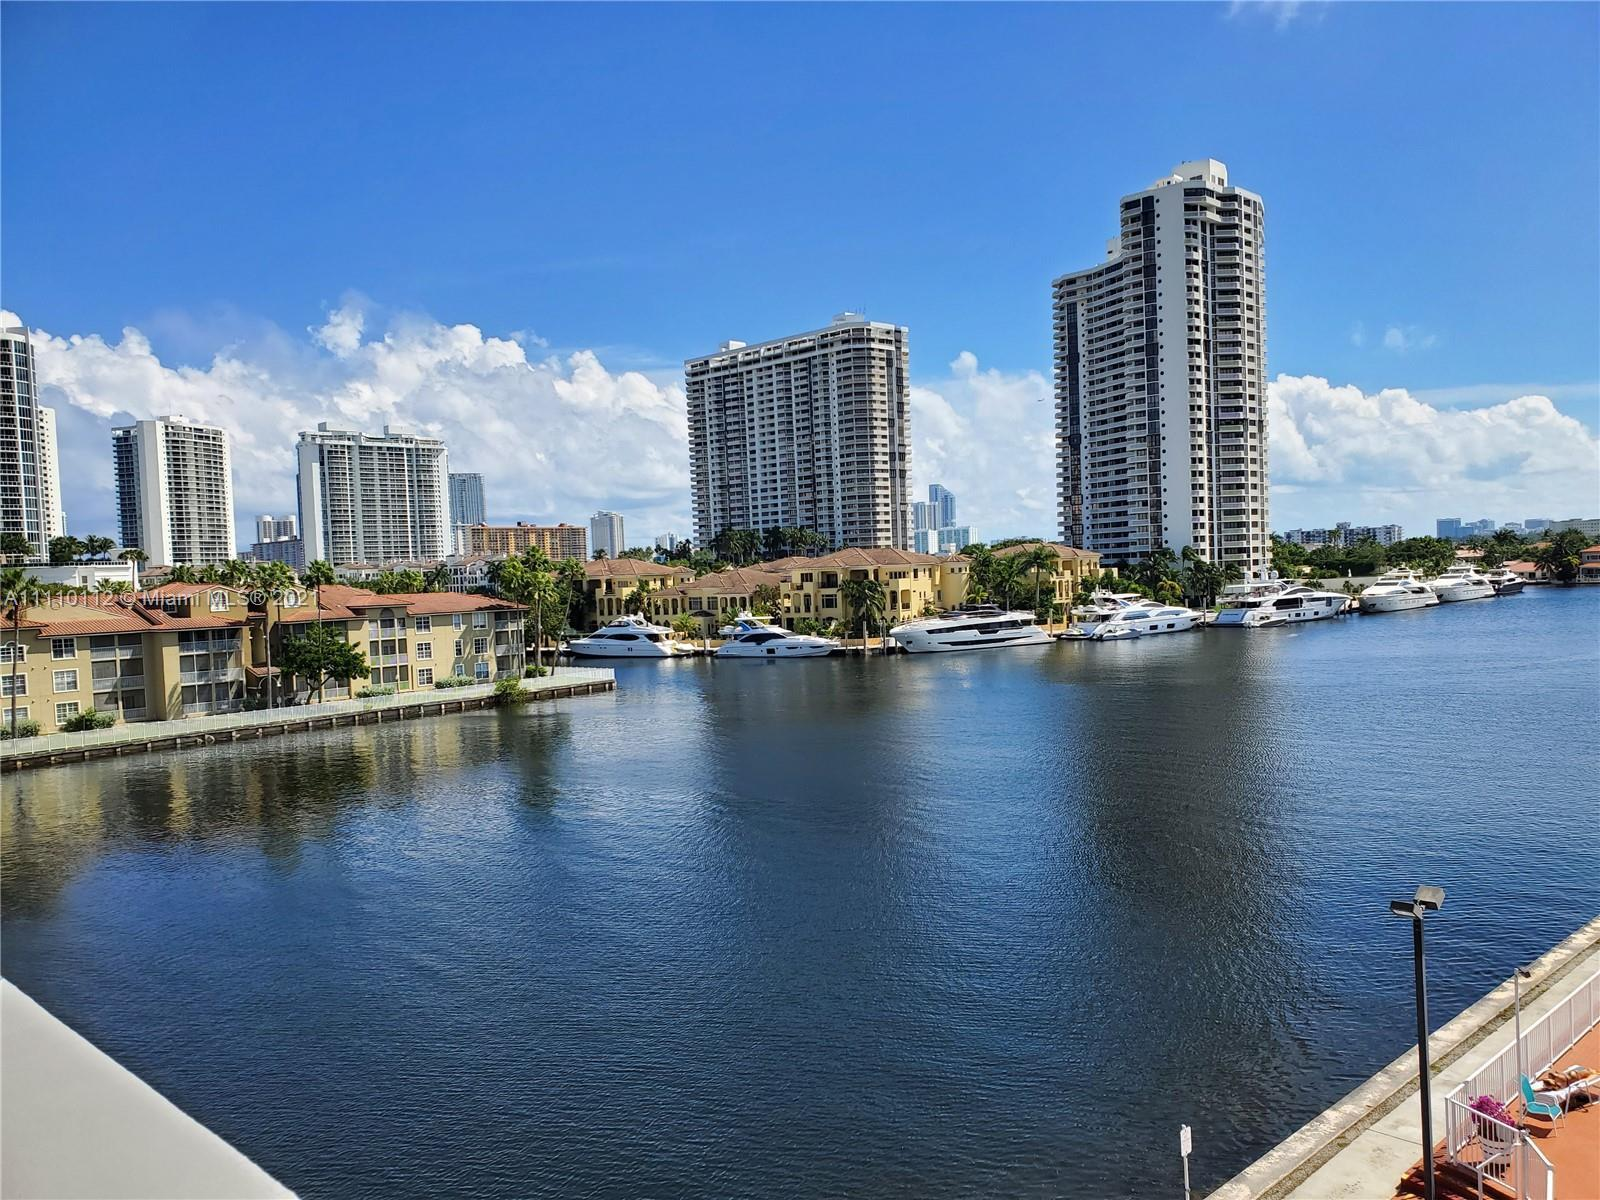 55+ community. 2/2 with a large balcony. Needs some TLC. Lots of potential. Waterview from the balco